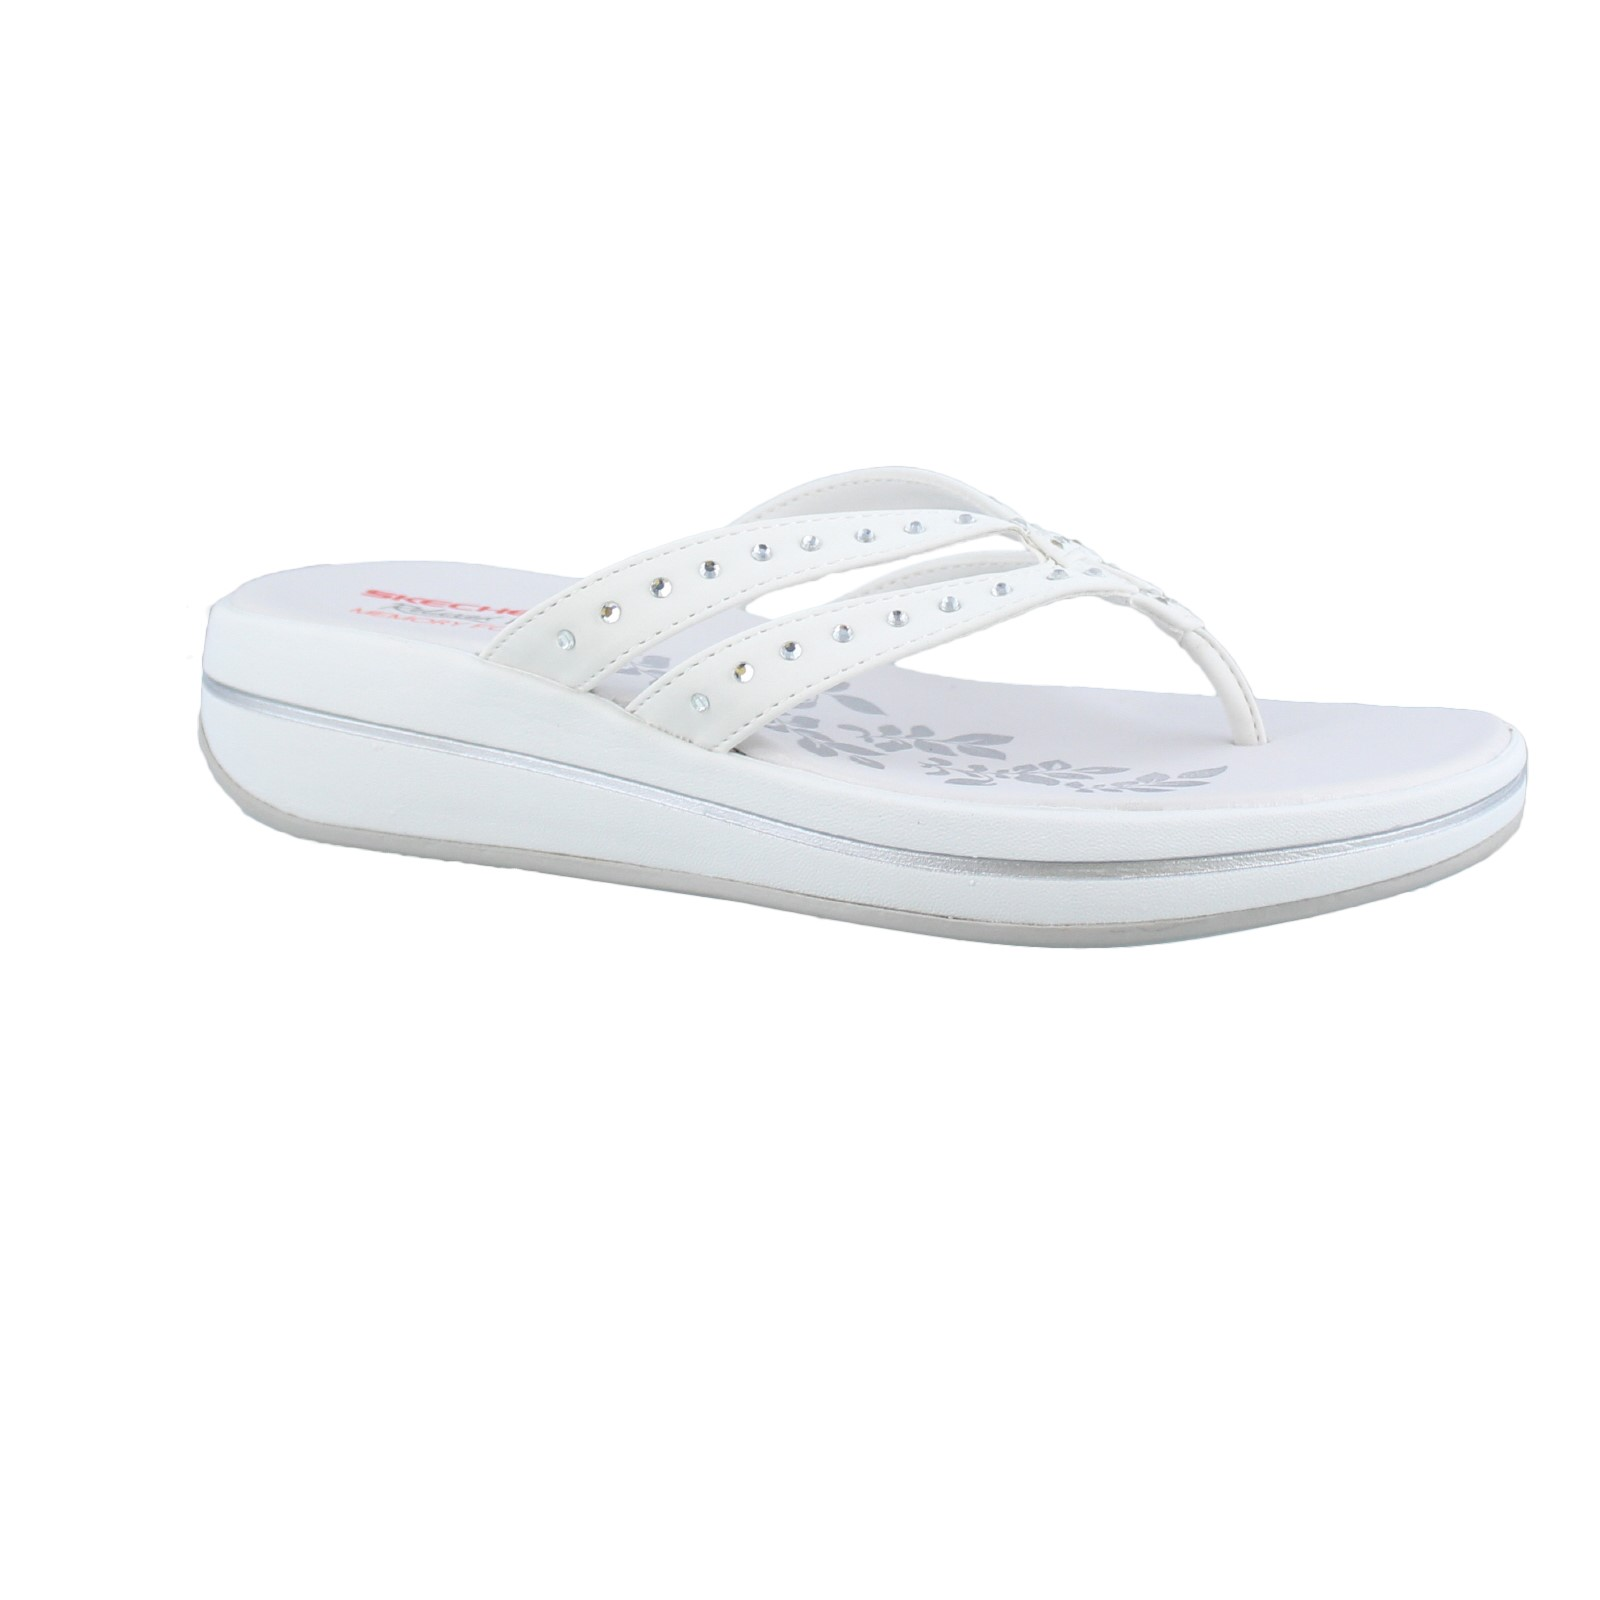 22081bb19 Next. add to favorites. Women s Skechers